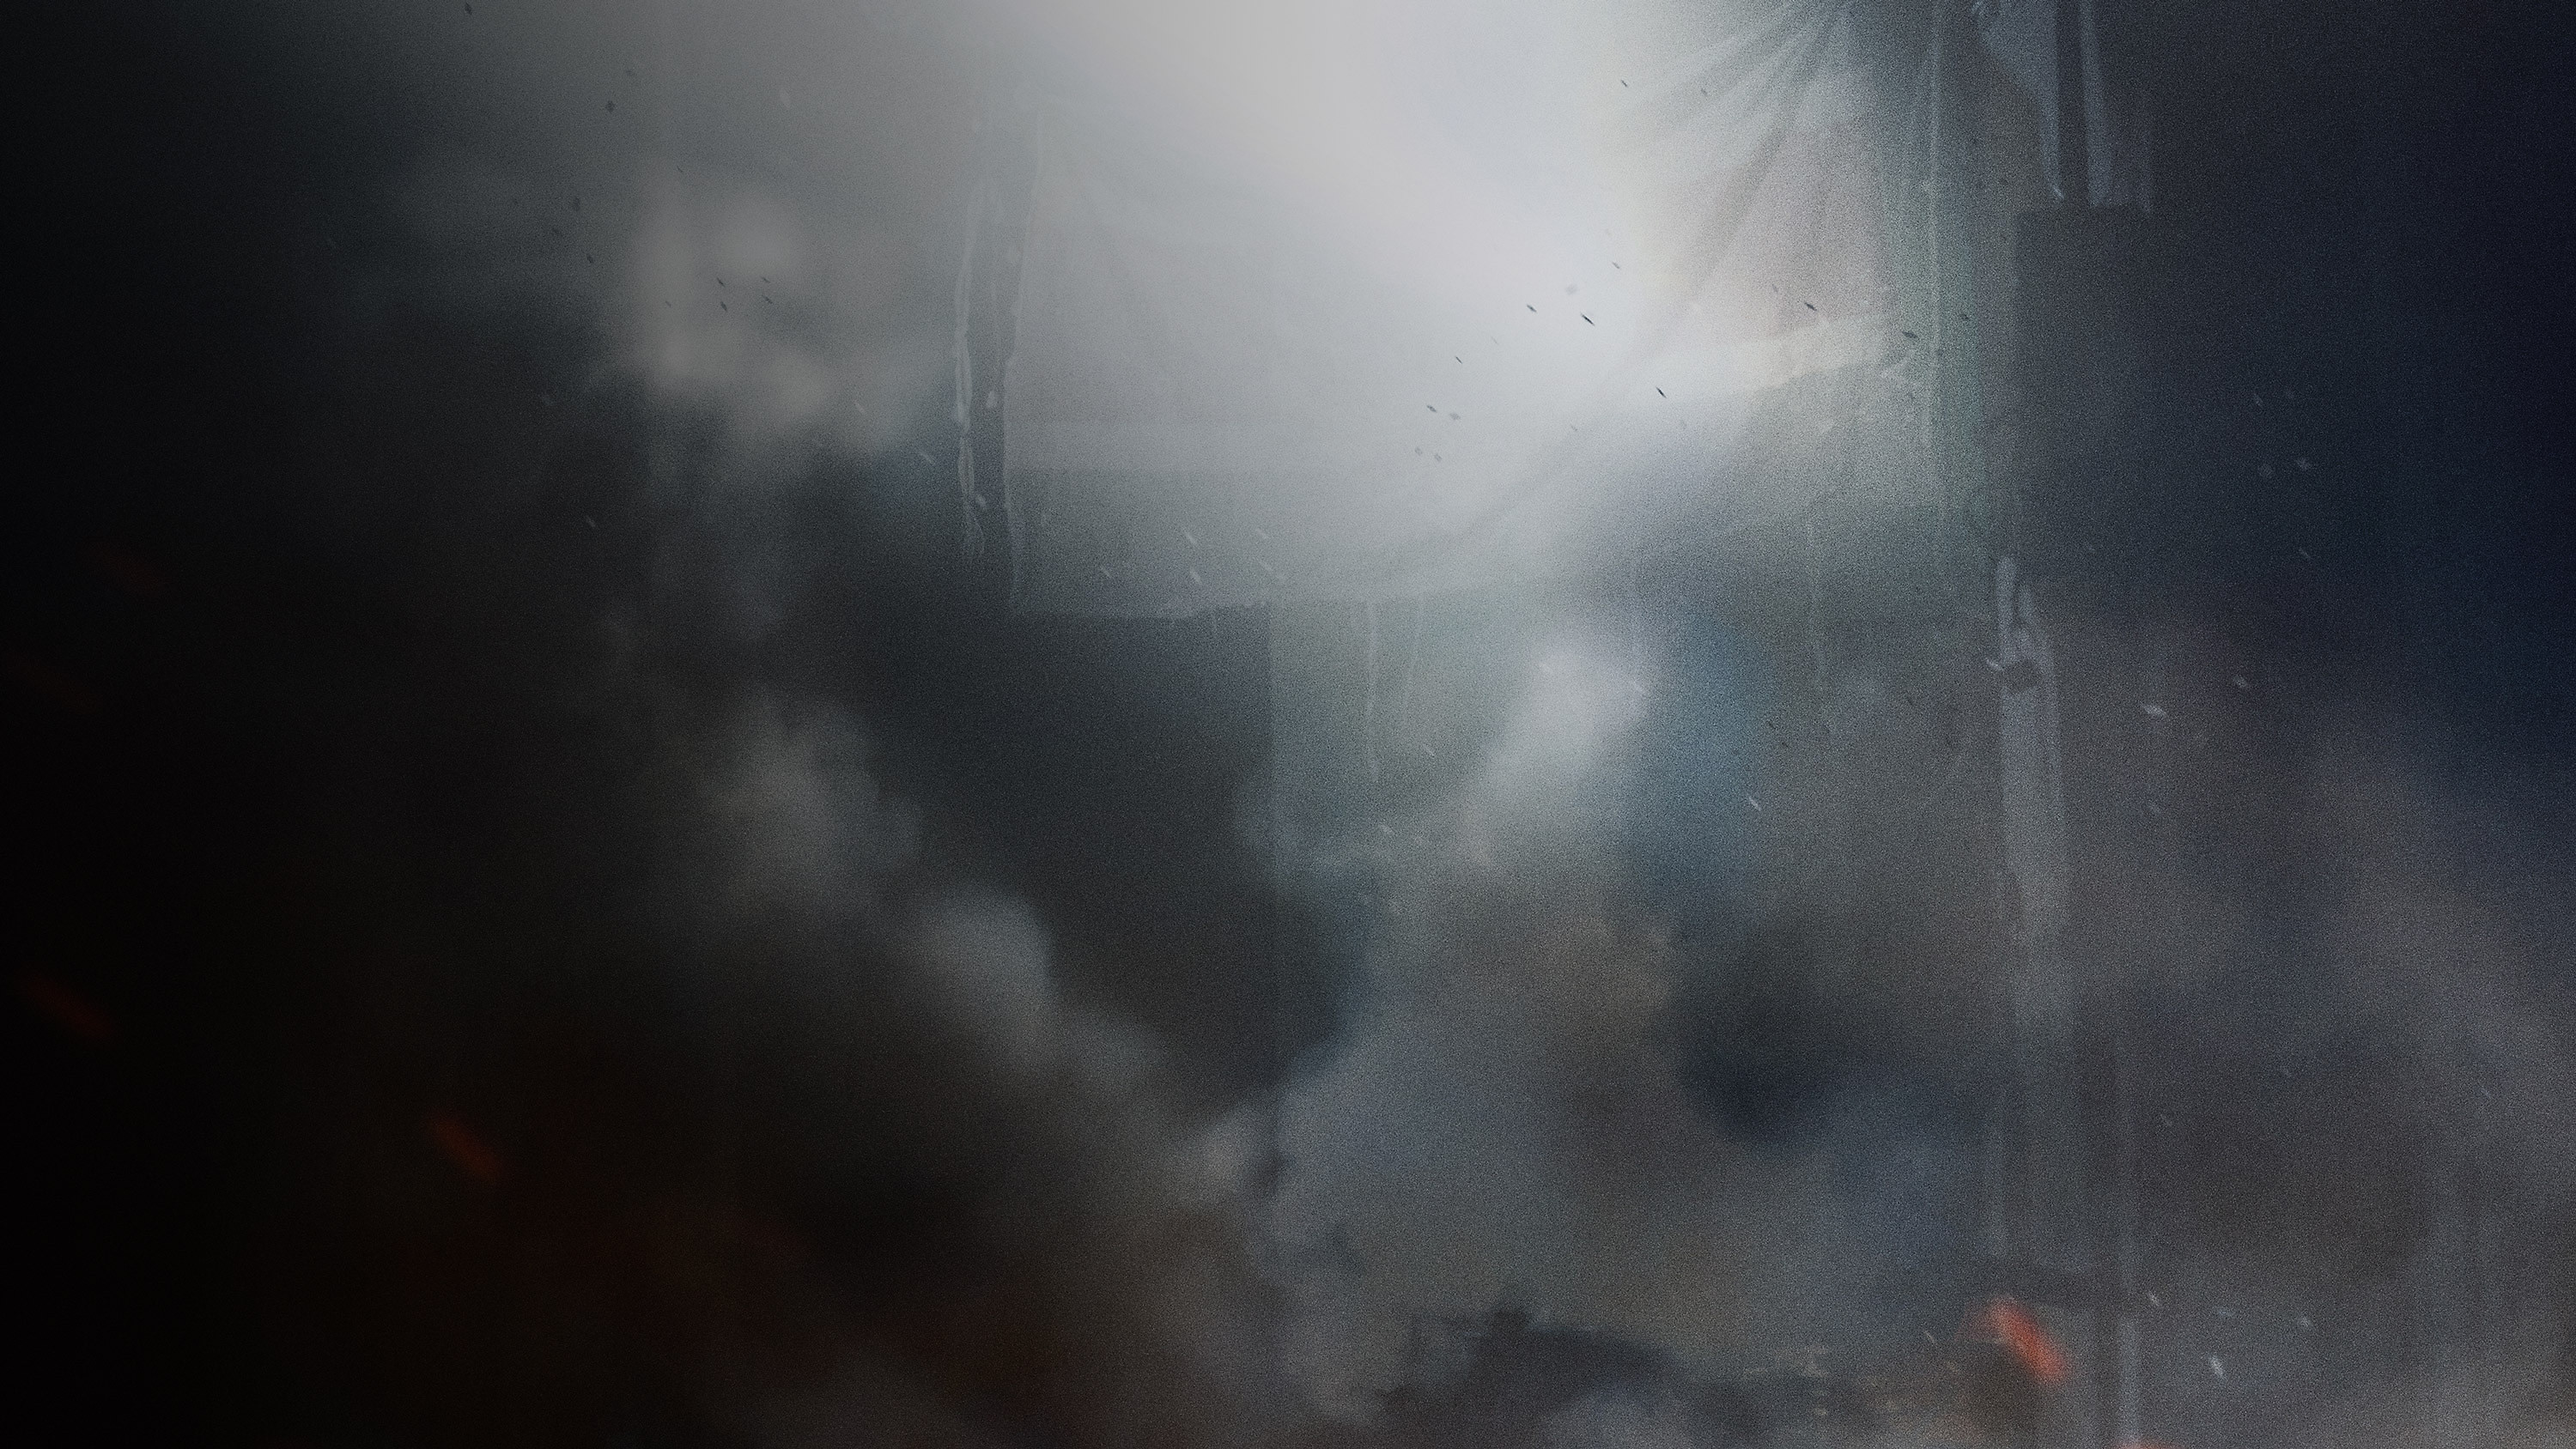 Call of Duty Modern Warfare - Background art